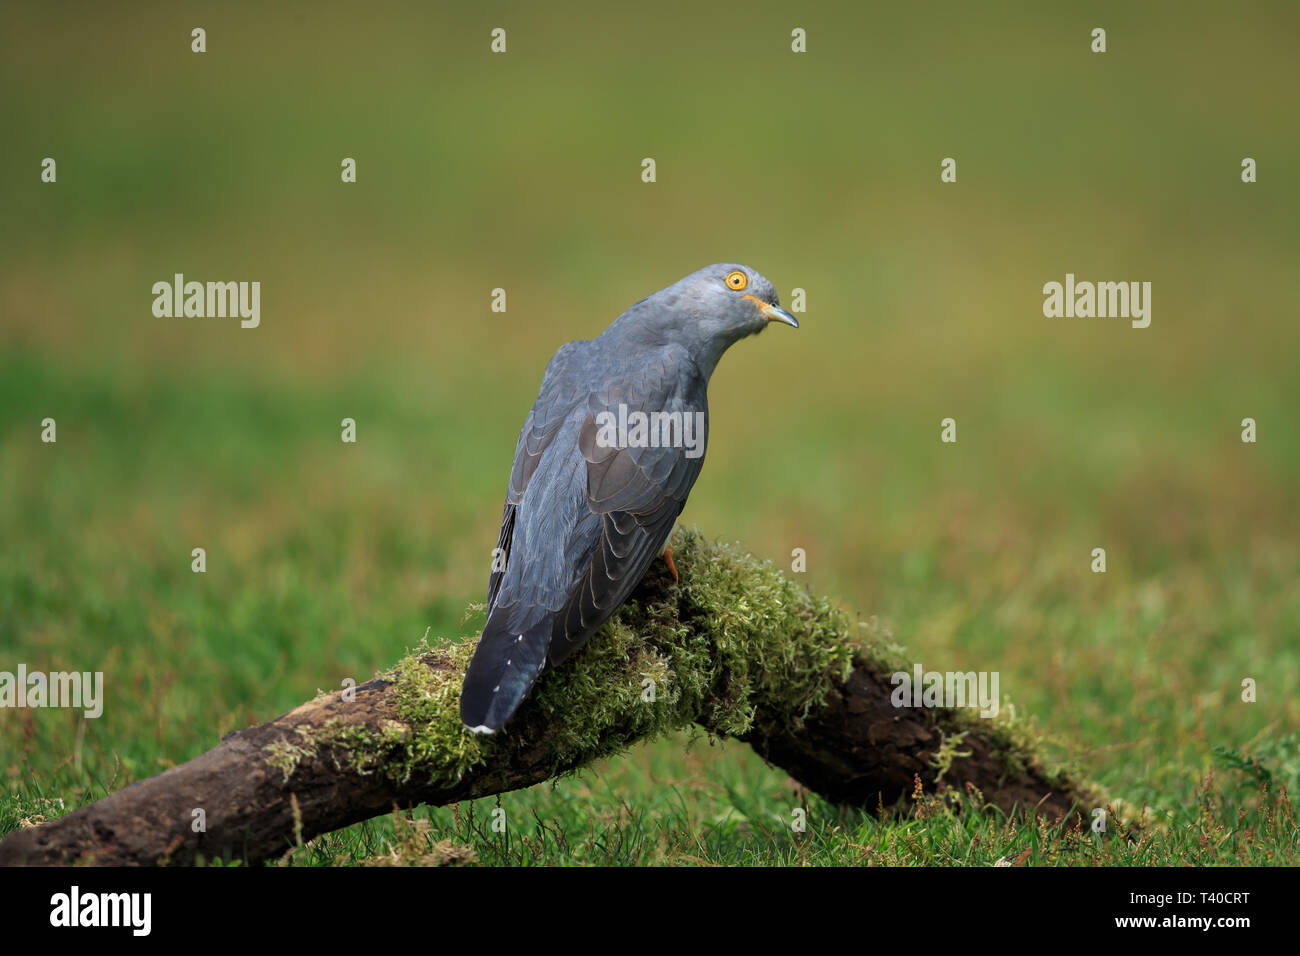 A Common cuckoo on the ground in spring - Stock Image